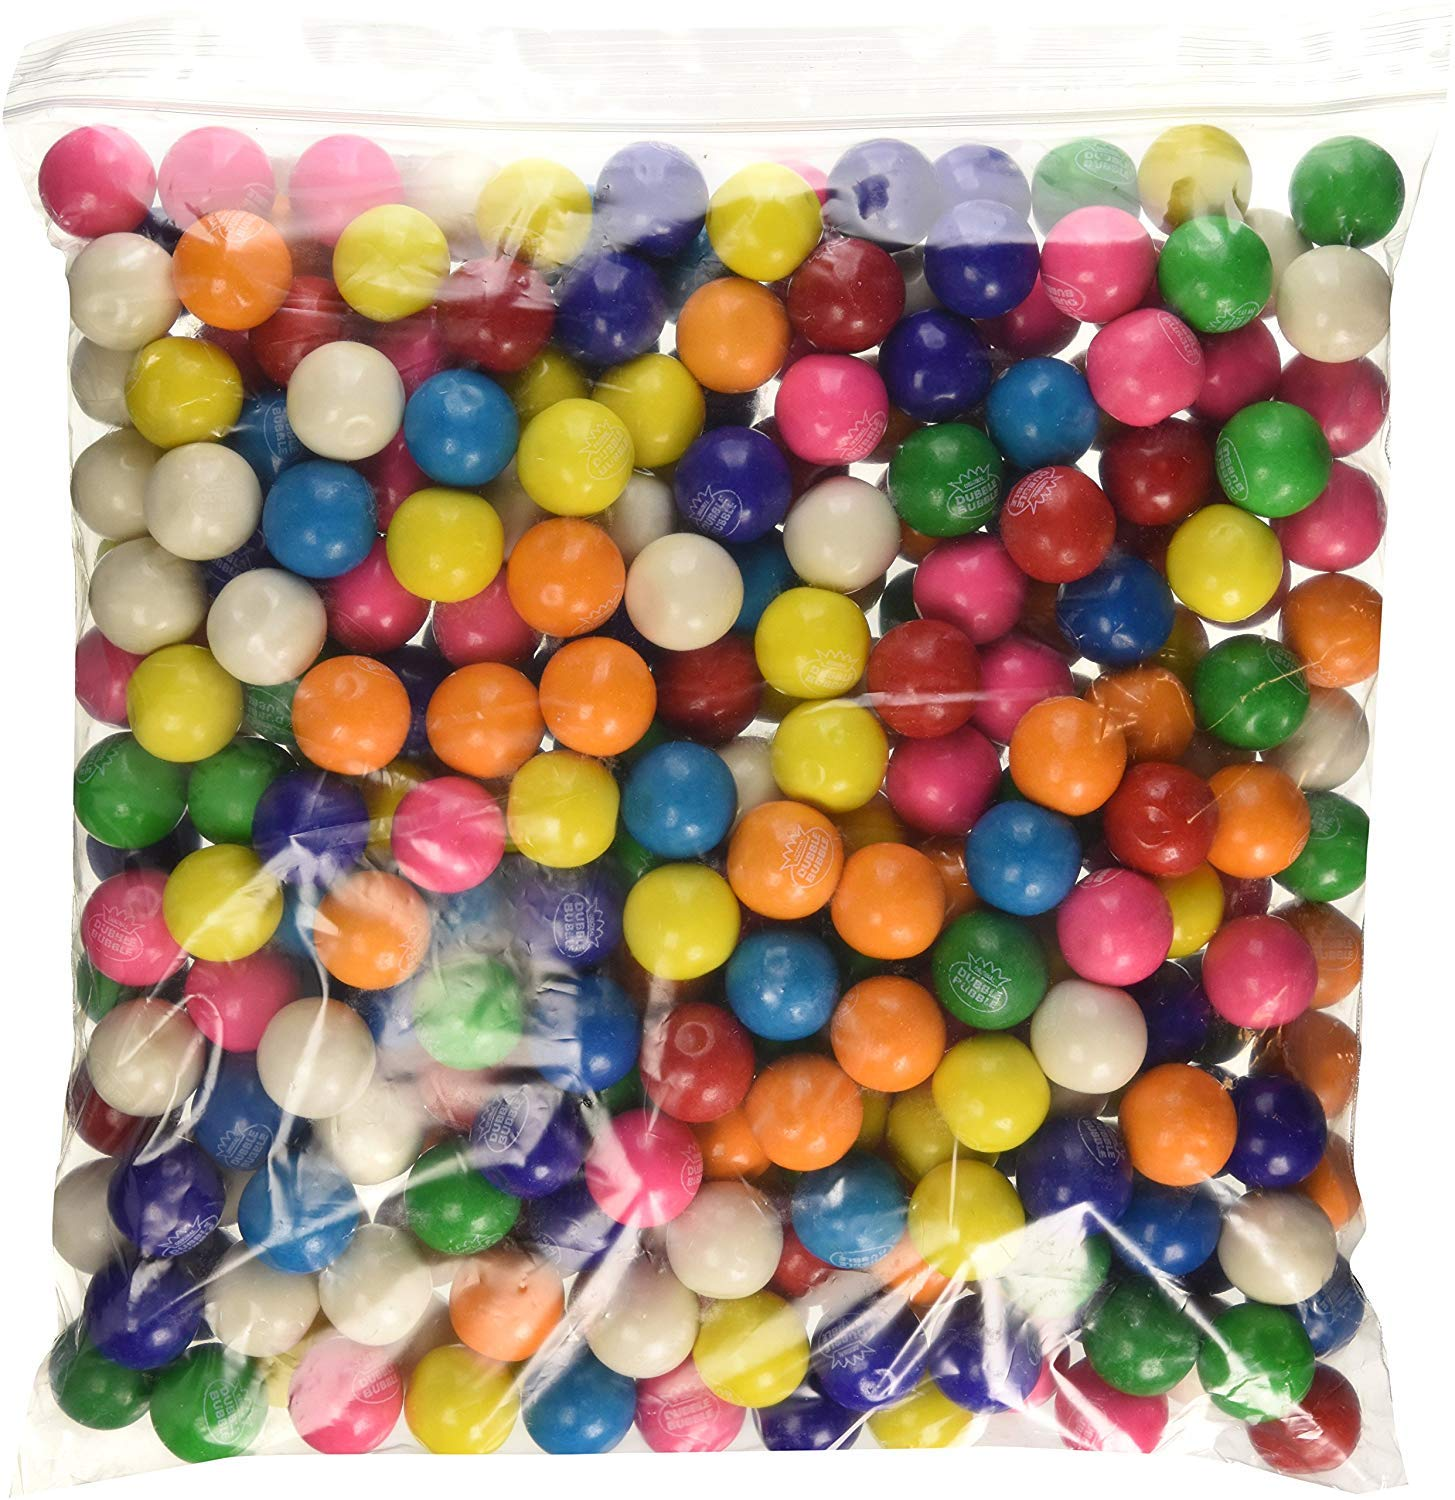 Dubble Bubble One Inch Gumballs Assorted Flavors 5 Pound Bag - pack of 2 by FIRST CLASS VENDING